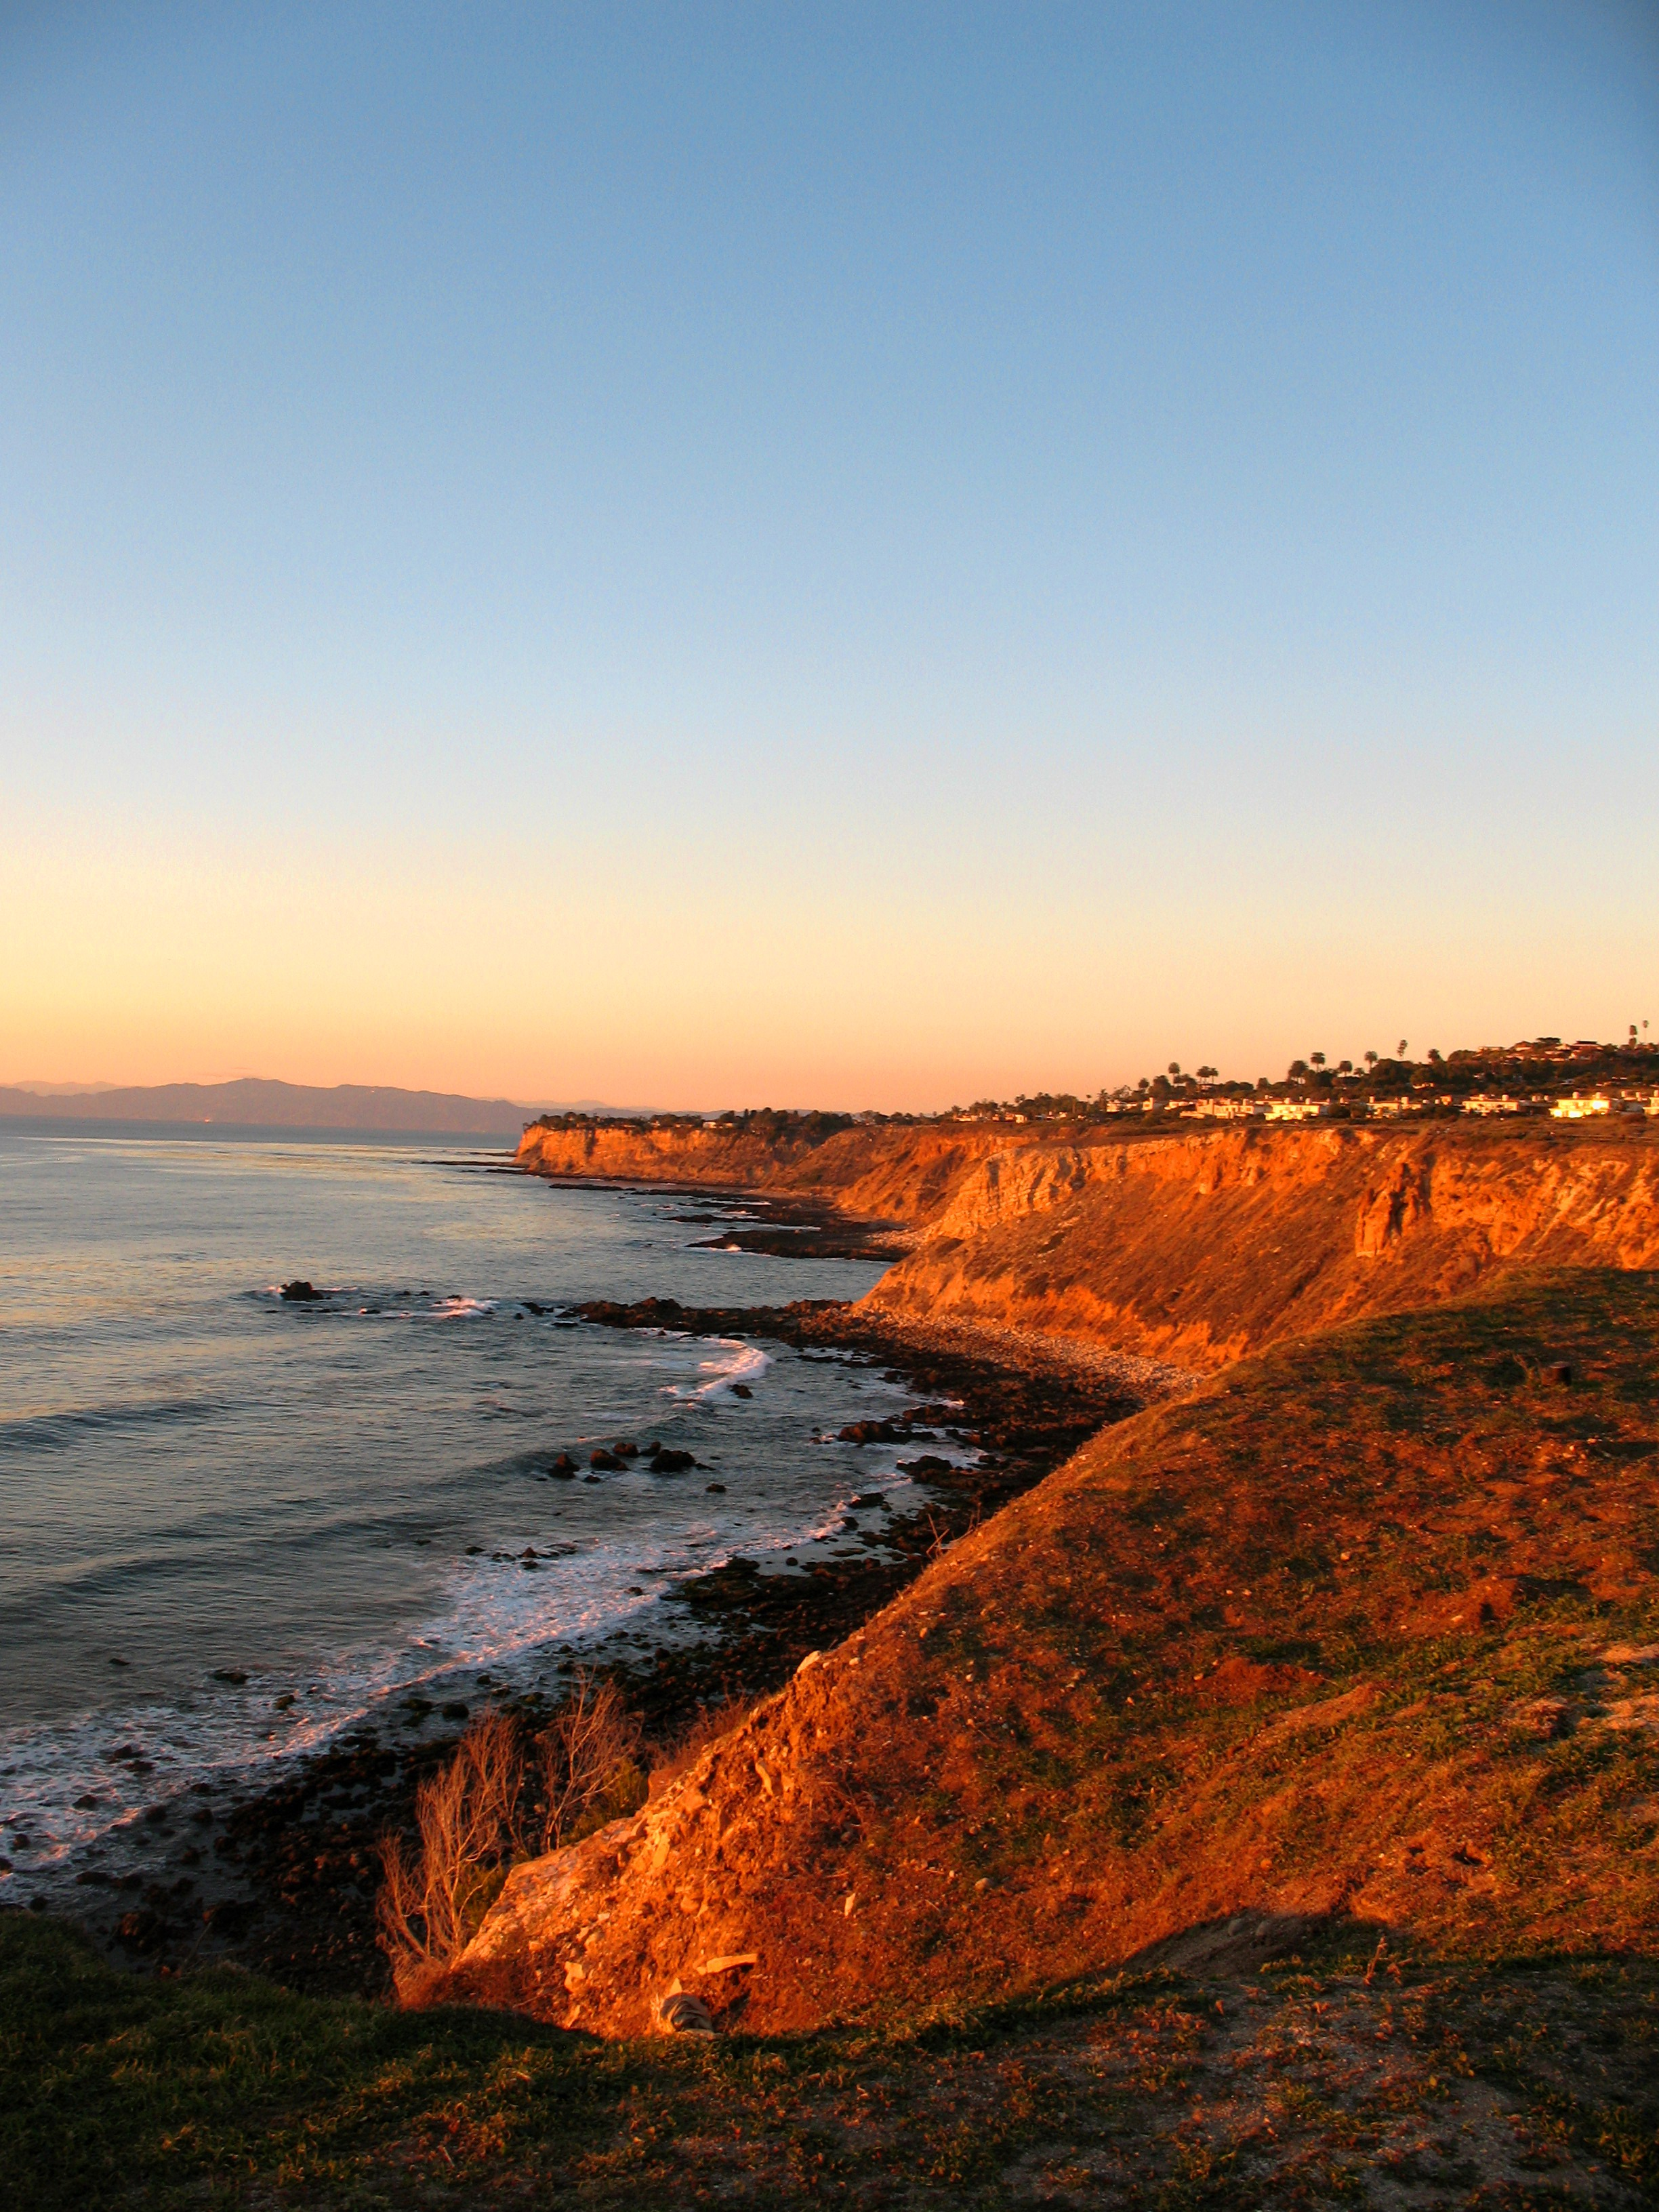 palos verdes peninsula muslim singles Manhattan beach, hermosa beach, redondo beach, and palos verdes, teaching art in most grades and creating a fun system for 5th graders to learn the states and capitals member of hermosa beach historical society, she is active in church, sunday school, involved in outreach to south africa.